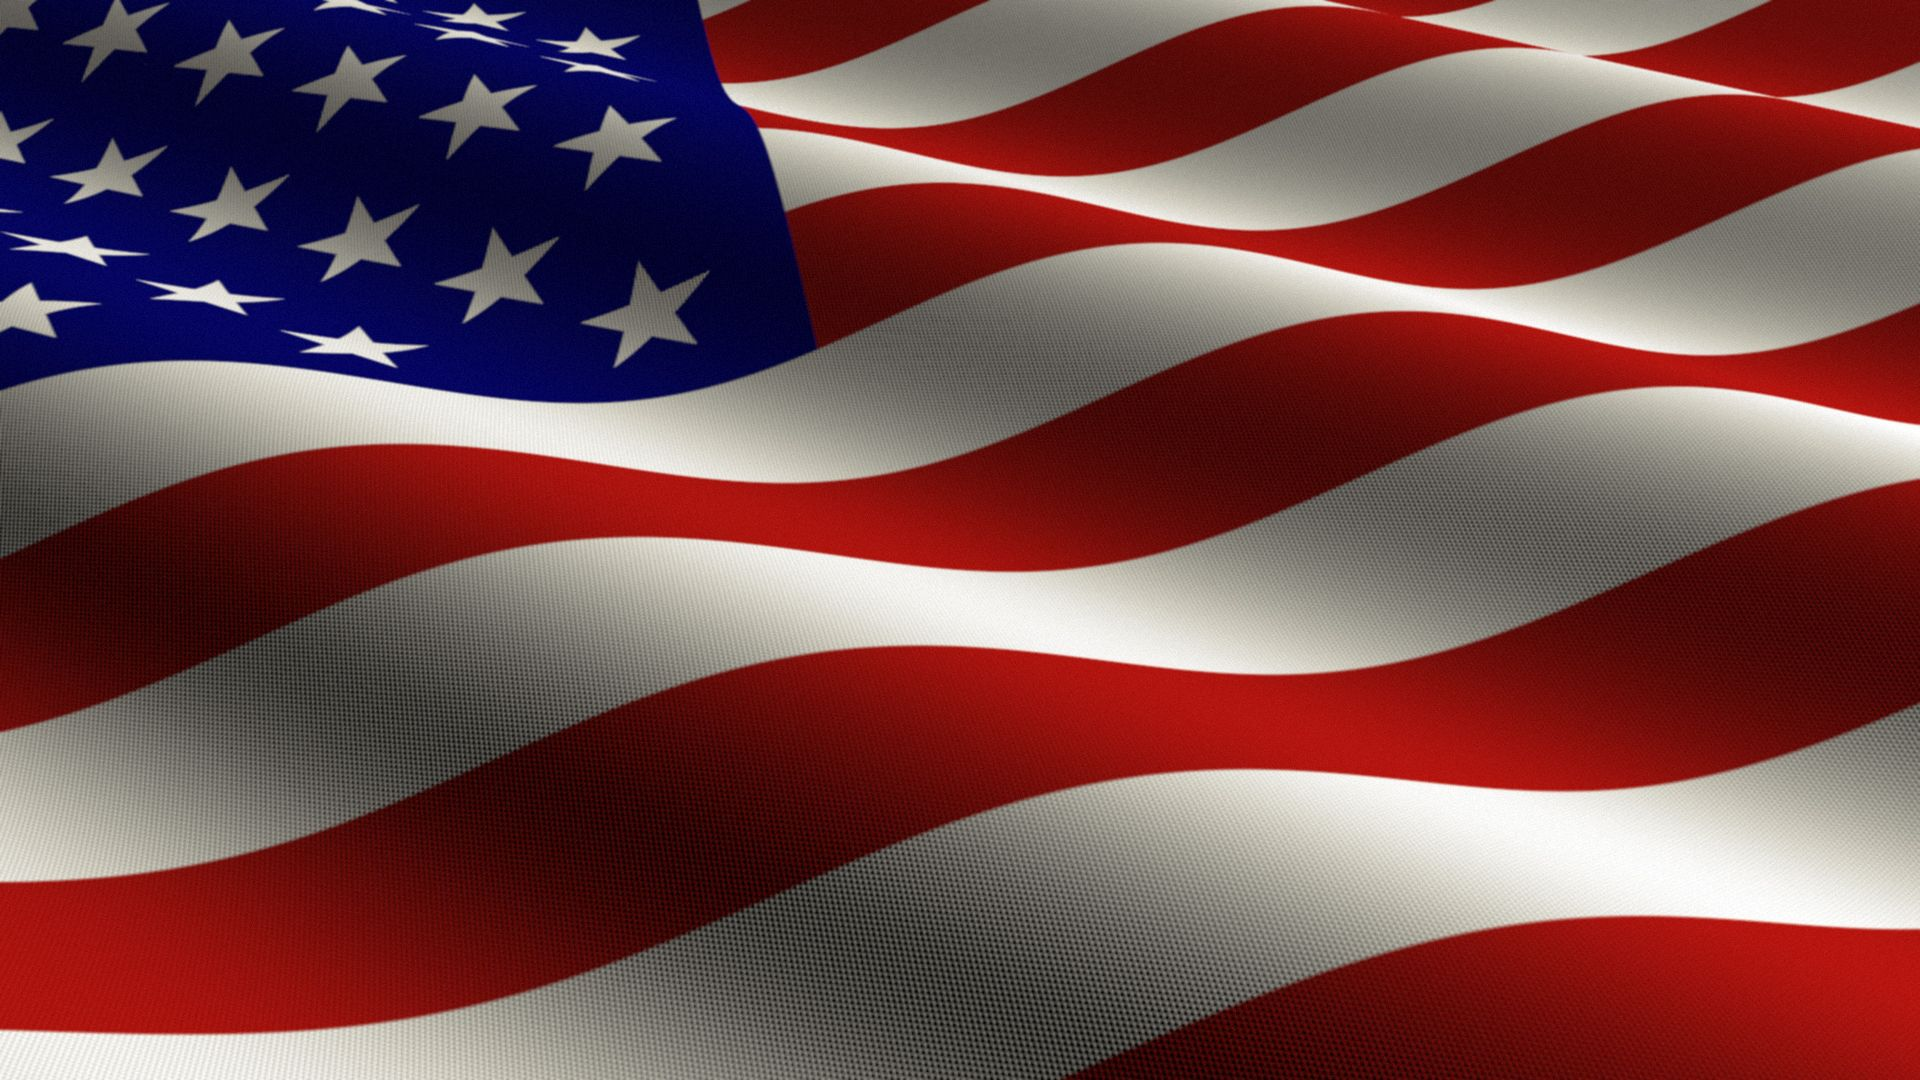 1920x1080 american flag desktop wallpaper - hddesktopwallpaper.org